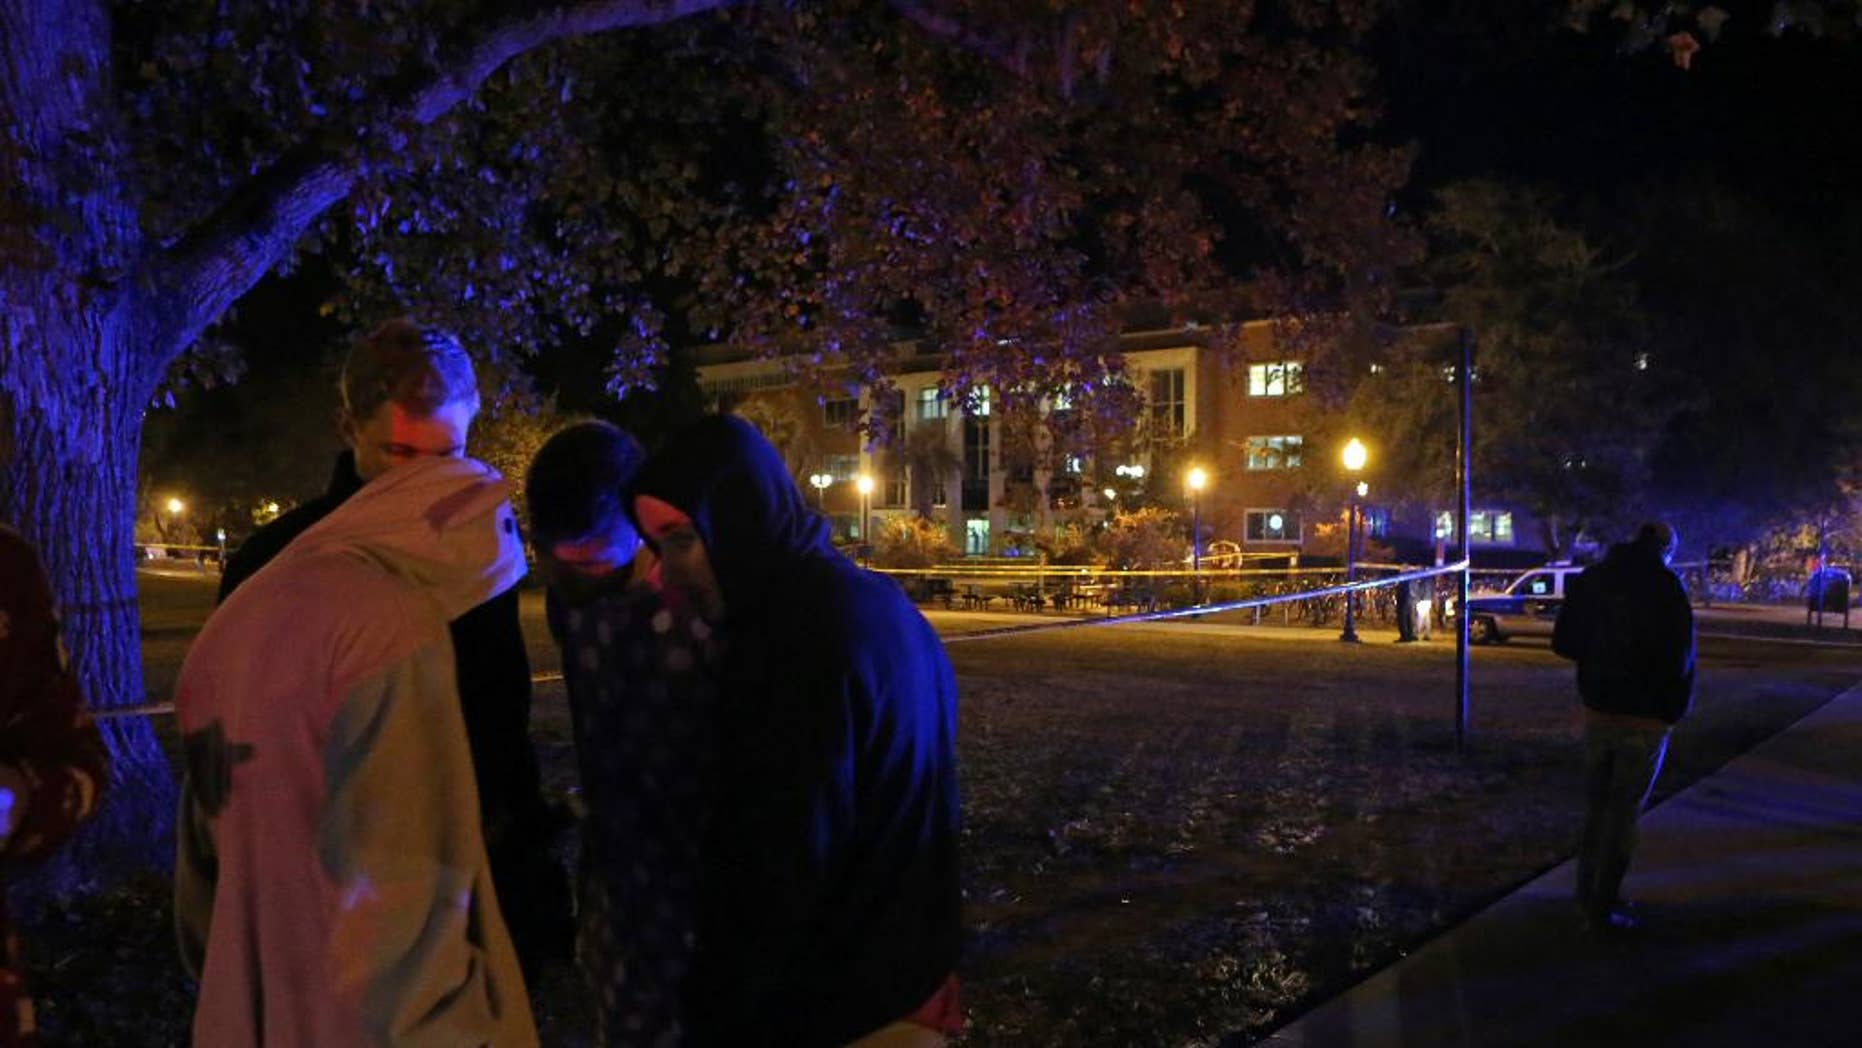 A group of students call their friends still locked down in Strozier Library, background, after a shooting on Thursday, Nov. 20, 2014, in Tallahassee, Fla. (AP Photo/Steve Cannon)